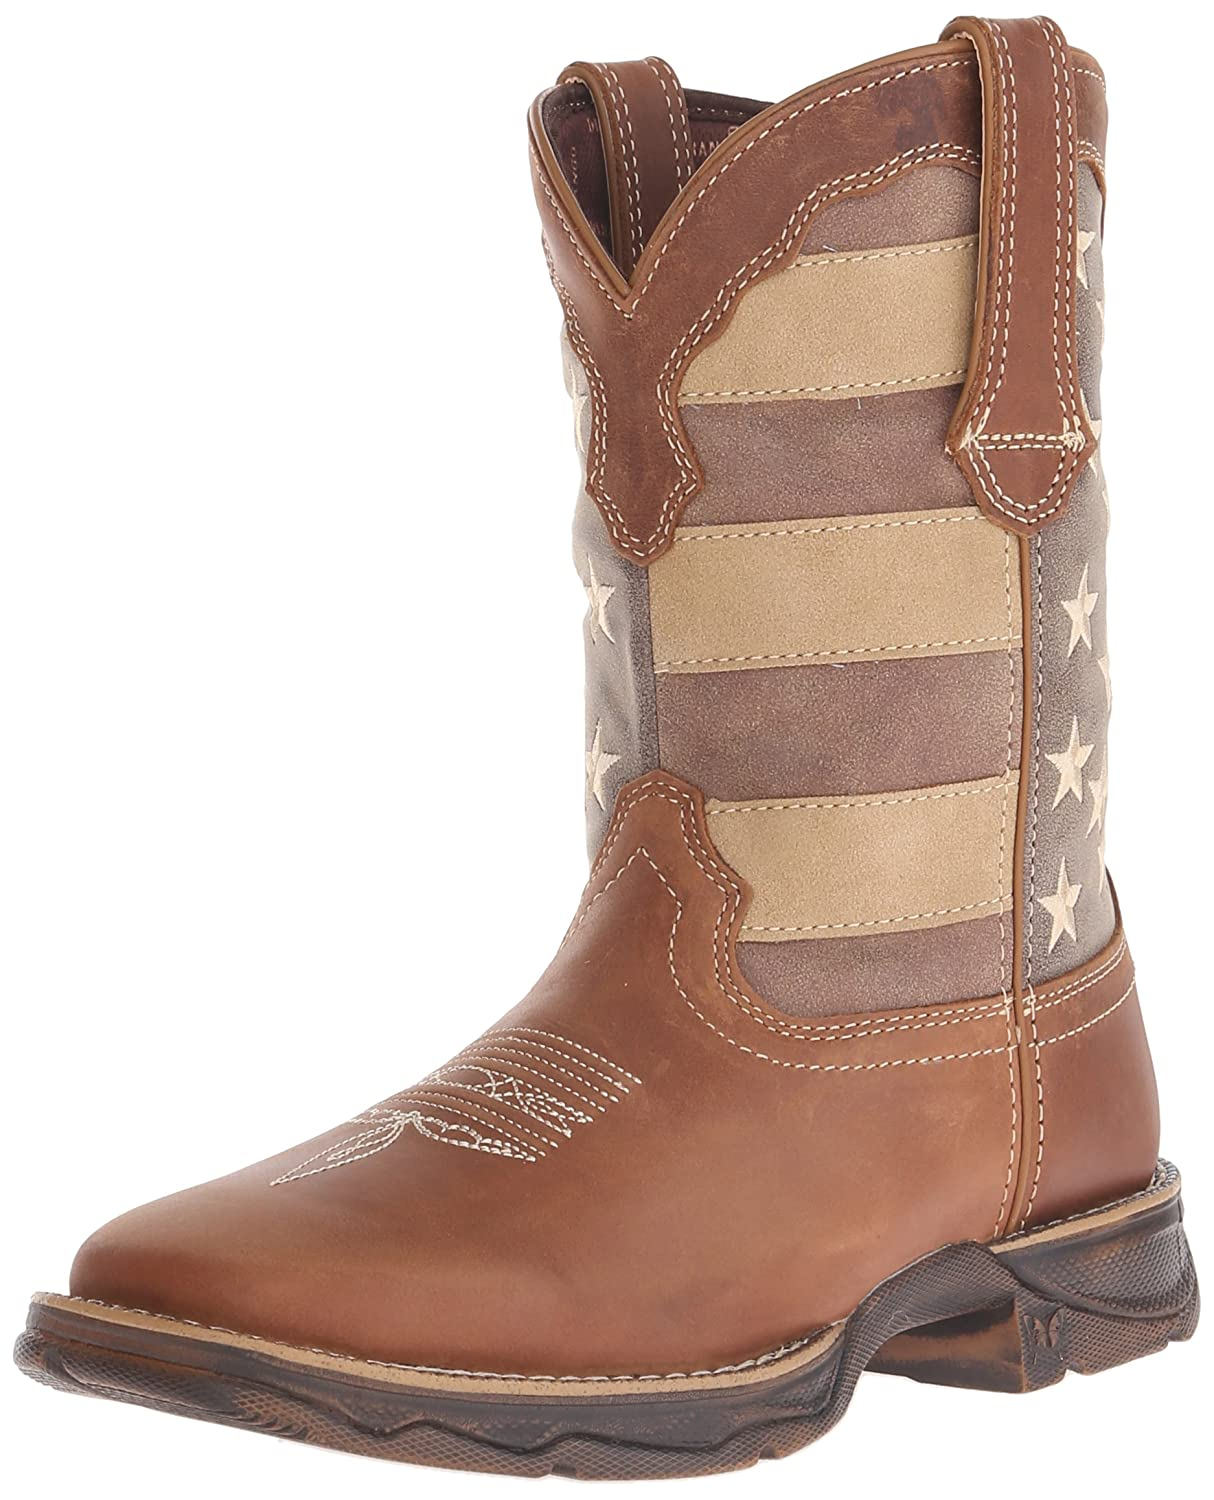 Durango Women's DRD0107 Western Boot B016W1P2LM 9 B(M) US|Brown/Faded Union Flag